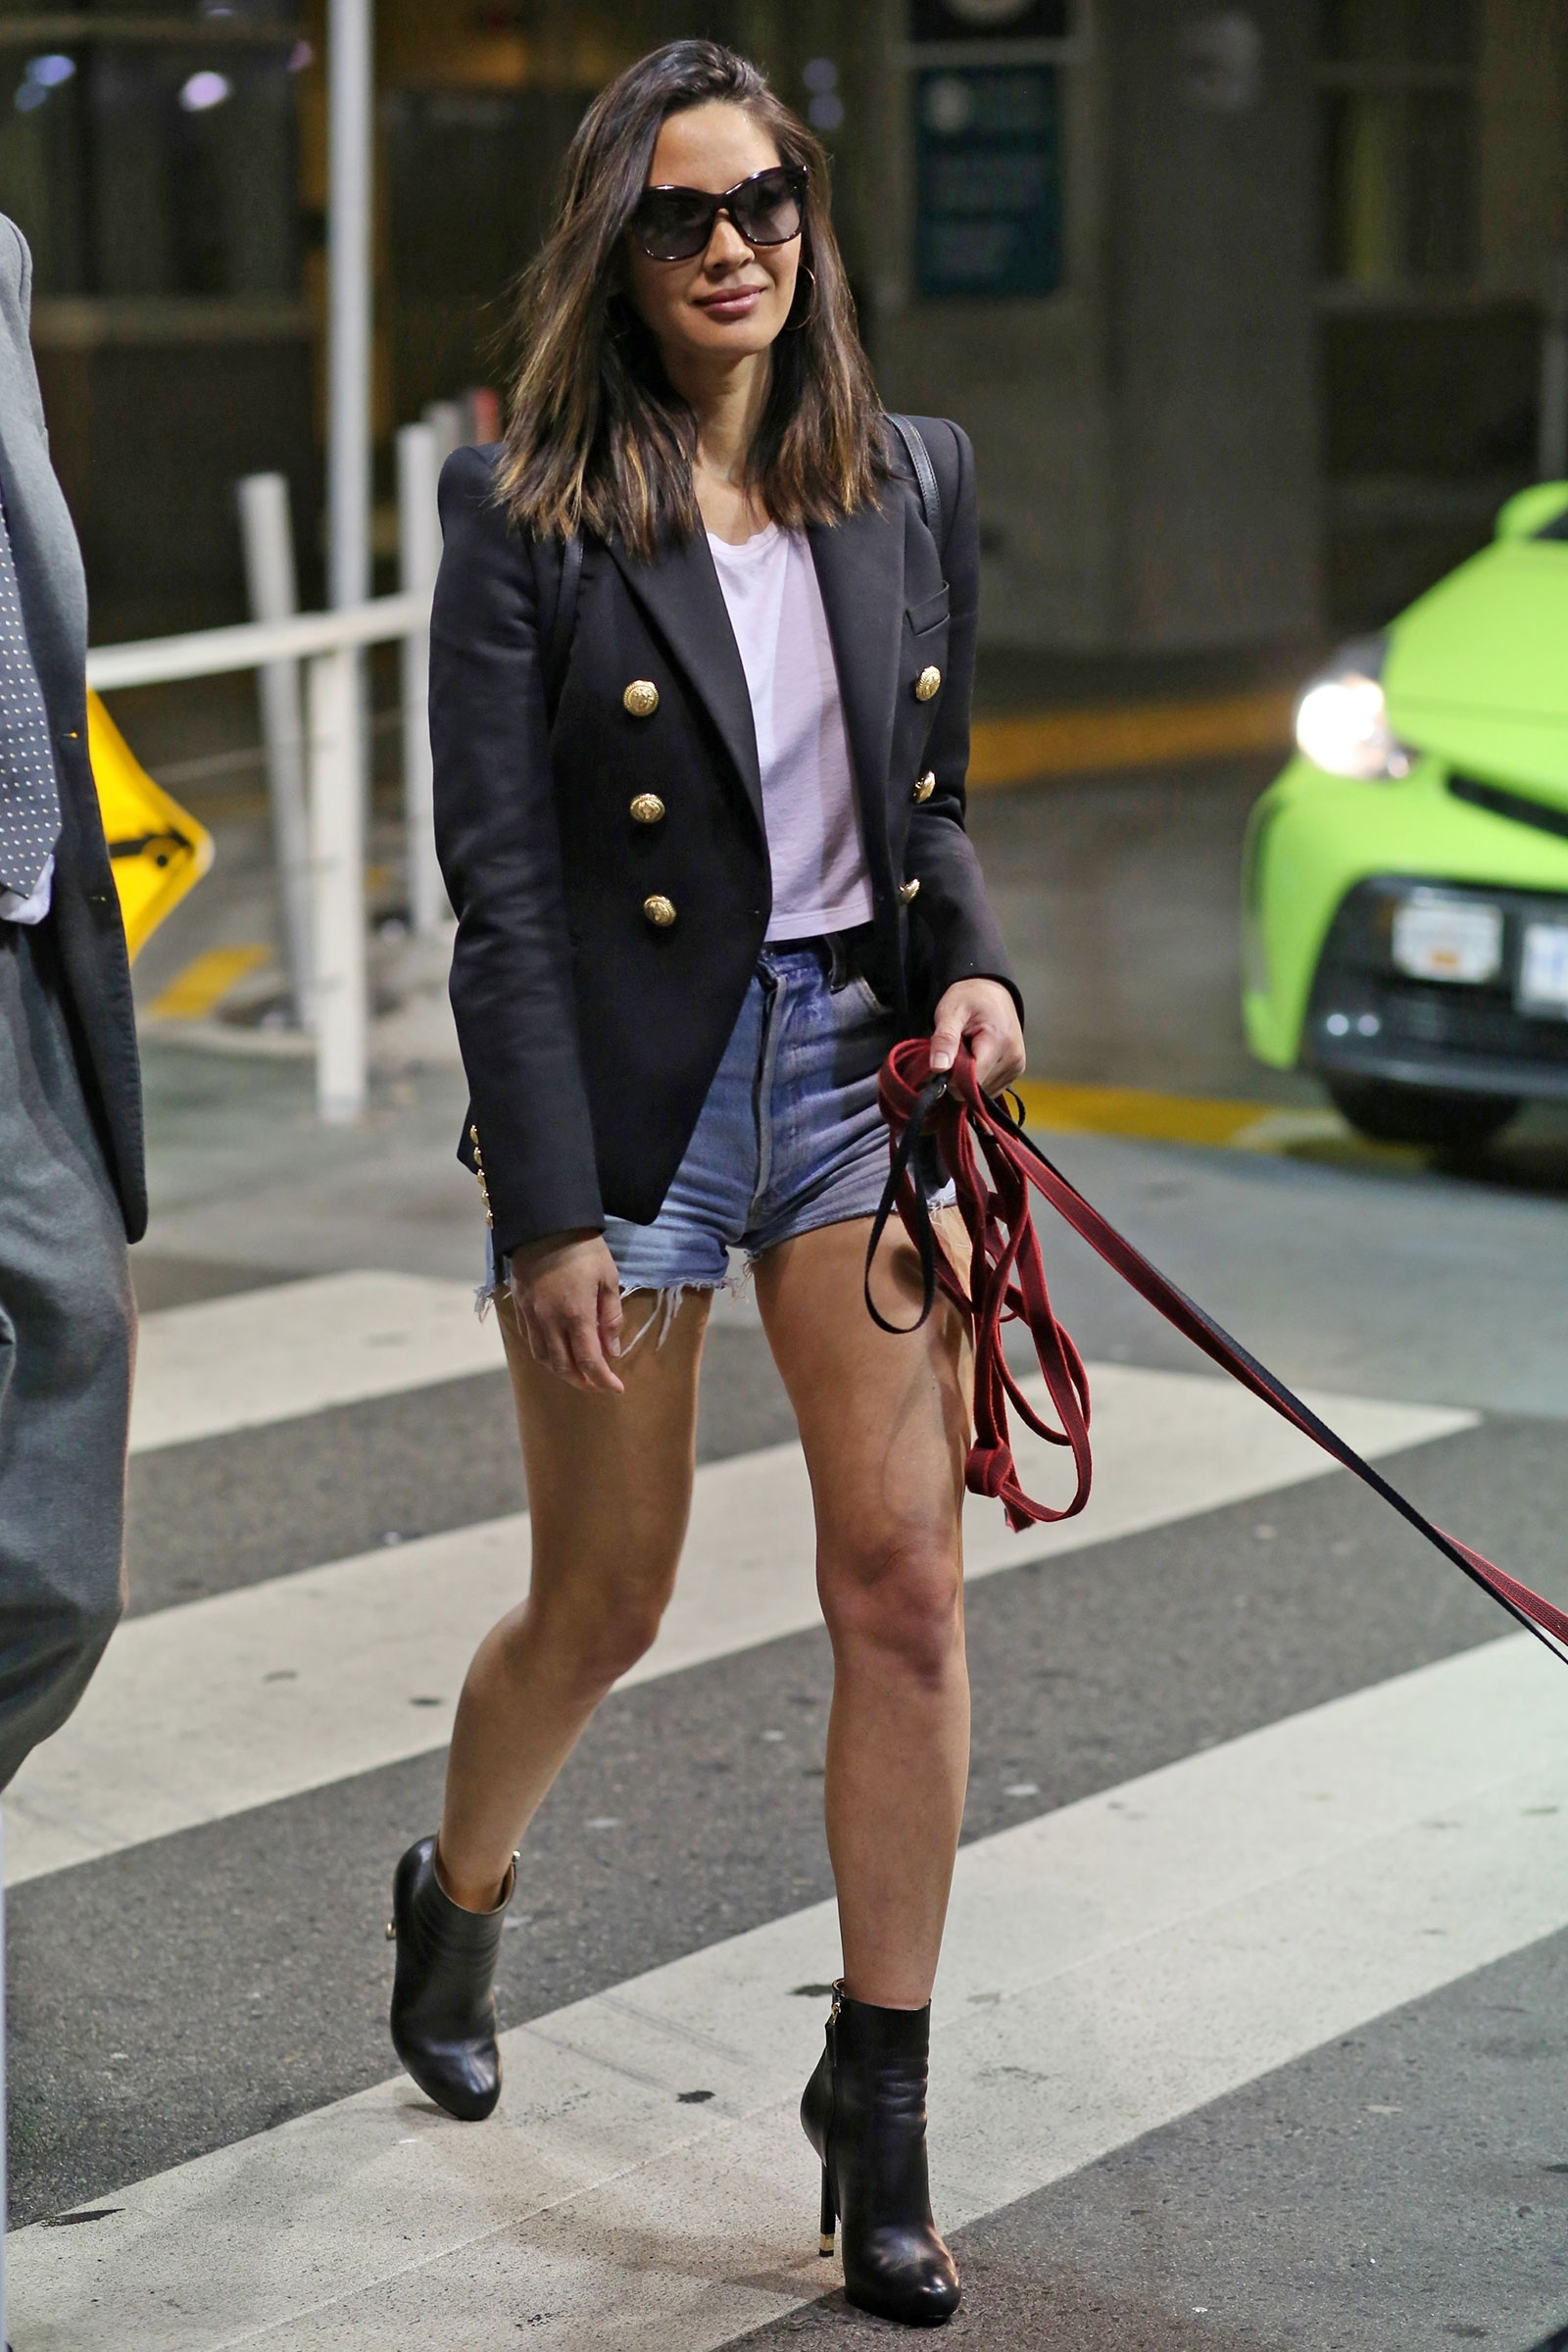 Olivia Munn's blazer and shorts look for less